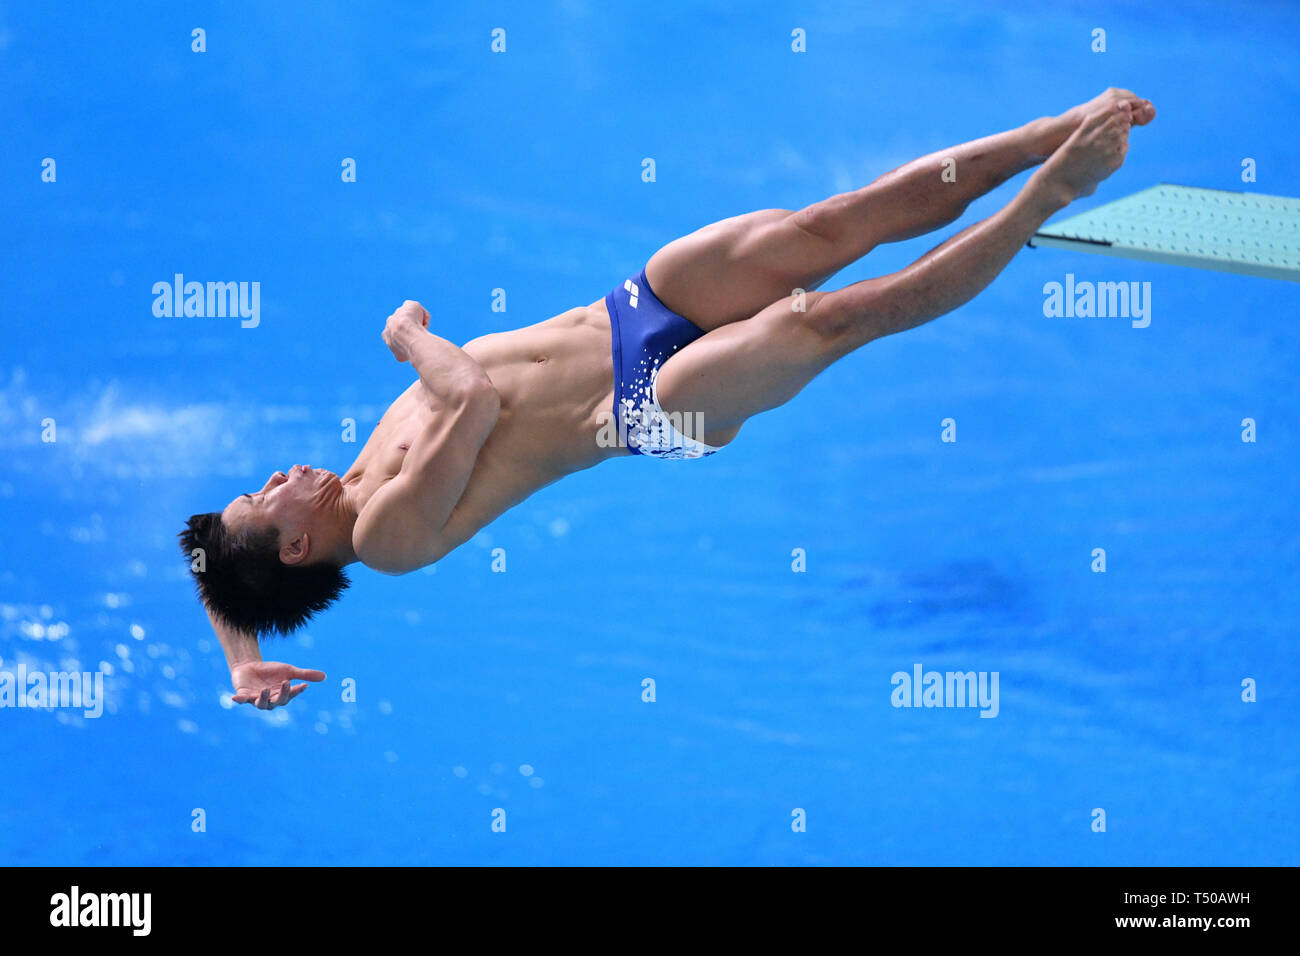 Tatsumi International Swimming Center, Tokyo, Japan. 19th Apr, 2019. Yuto Araki, APRIL 19, 2019 - Diving : Japan Indoor Diving Championship 2019 Men's 1m Springboard Final at Tatsumi International Swimming Center, Tokyo, Japan. Credit: MATSUO.K/AFLO SPORT/Alamy Live News Stock Photo